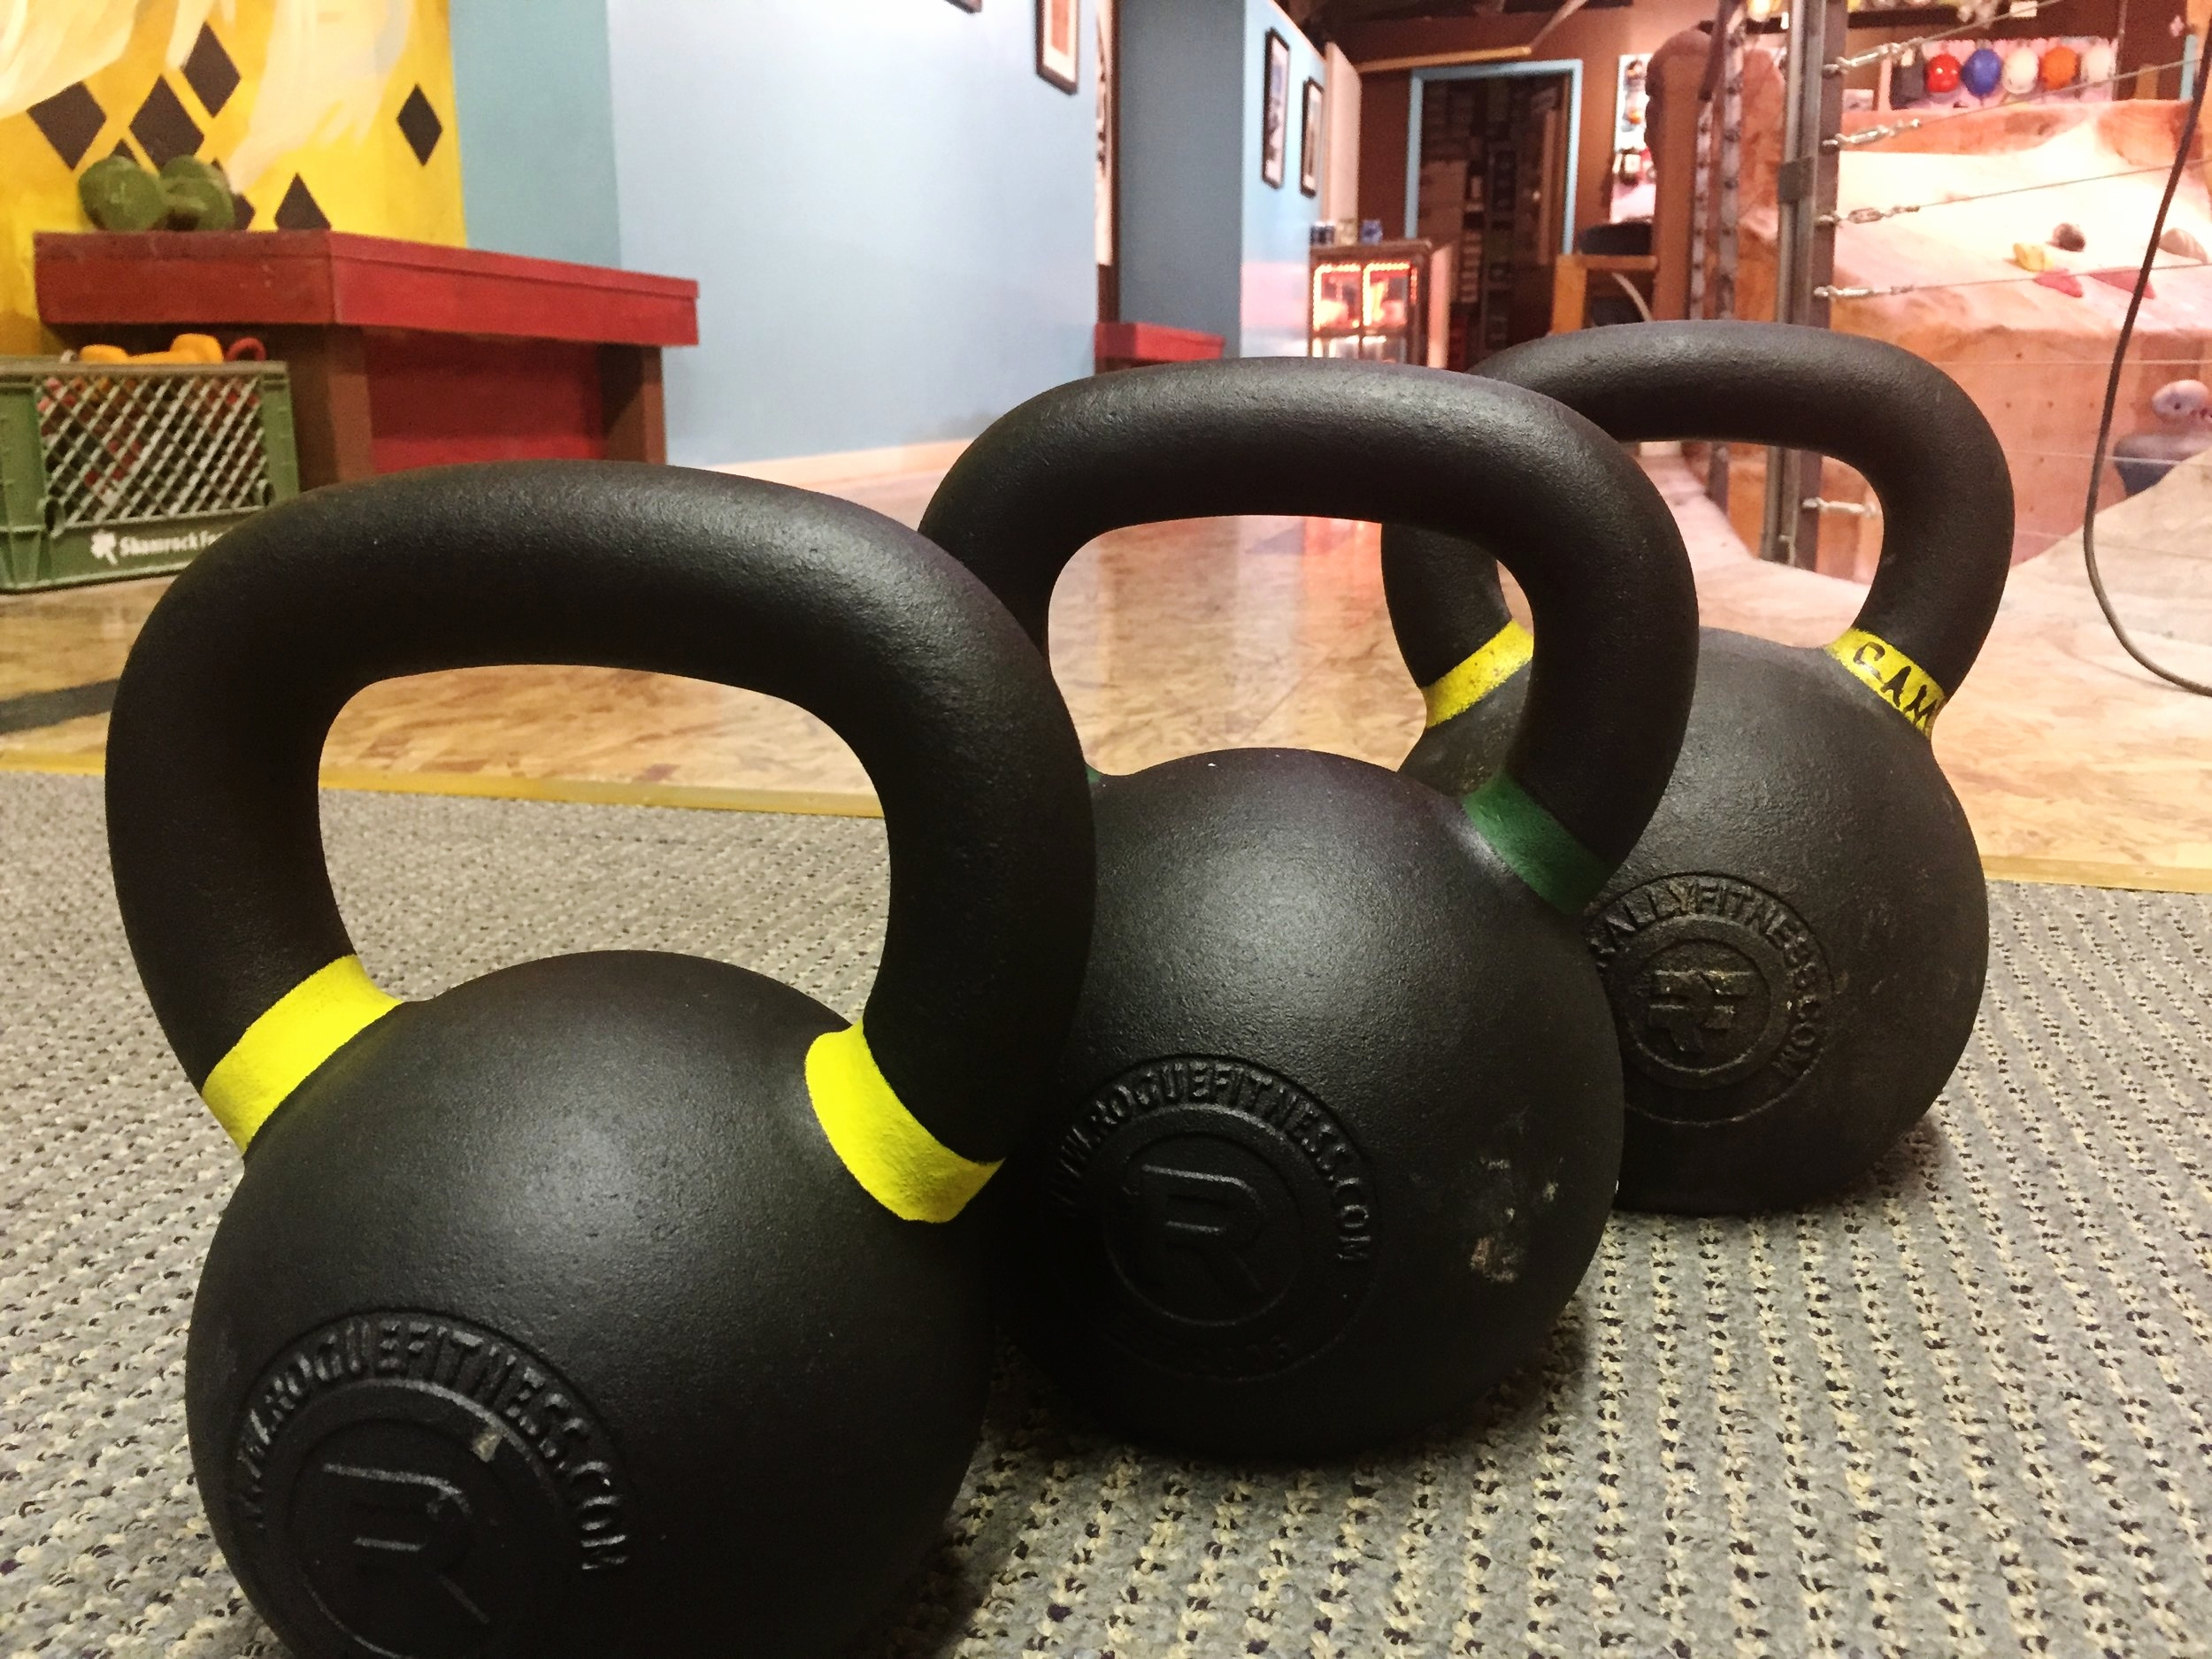 Cannon balls ready to fire. We often workout right next to the retail shop after our climbing workouts.